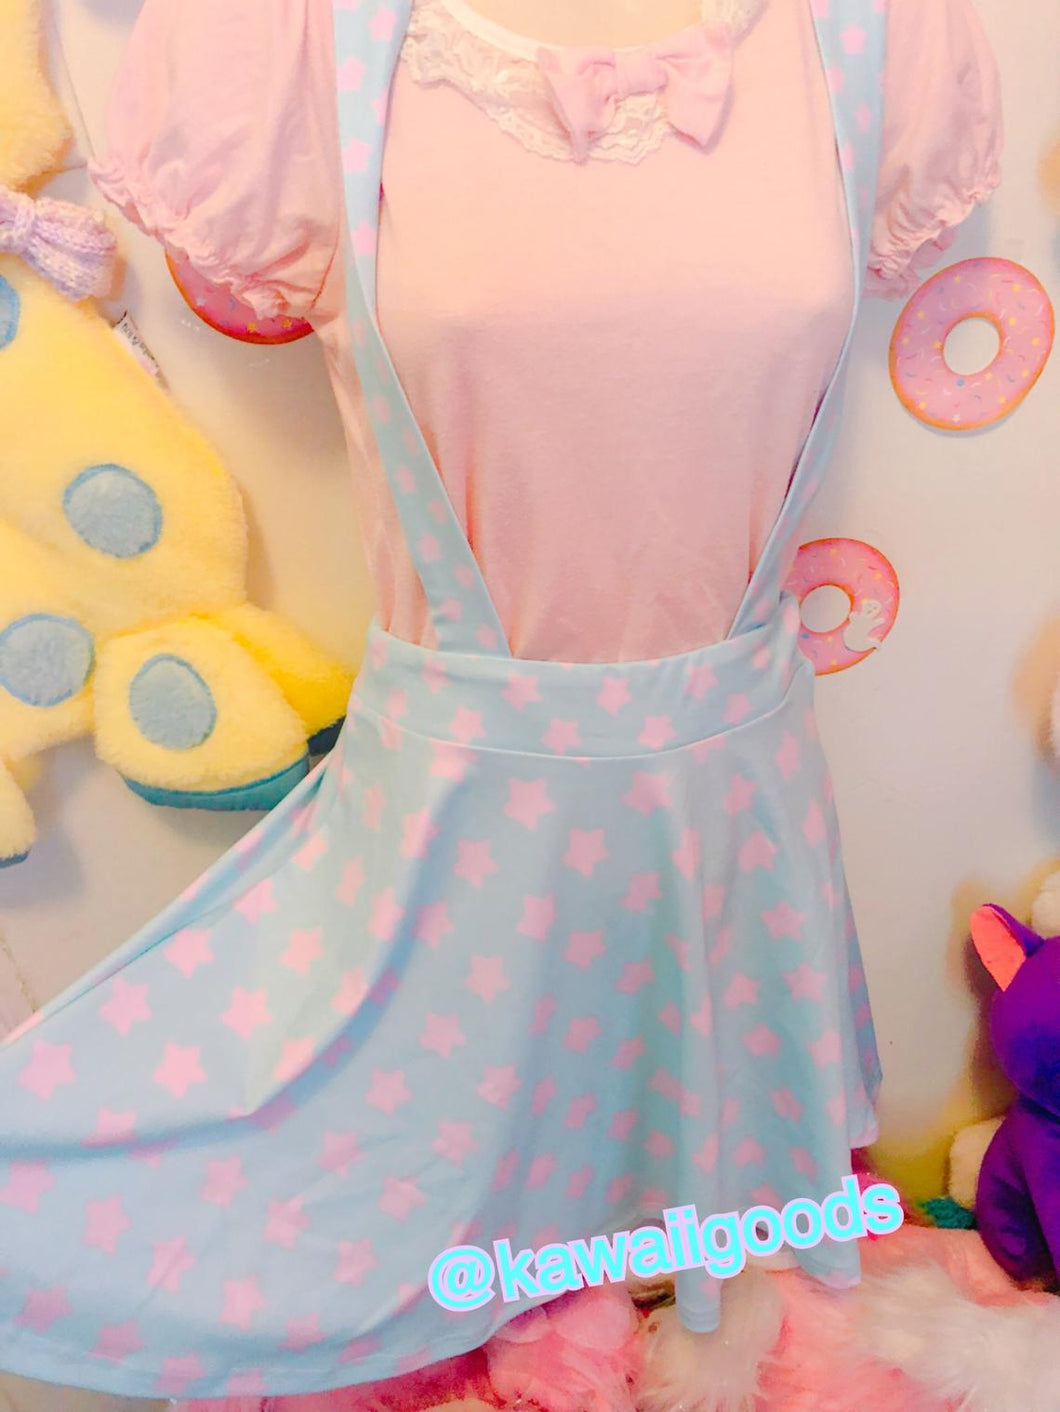 Starry Pastel Yume Kawaii Suspender Skirt (made to order)